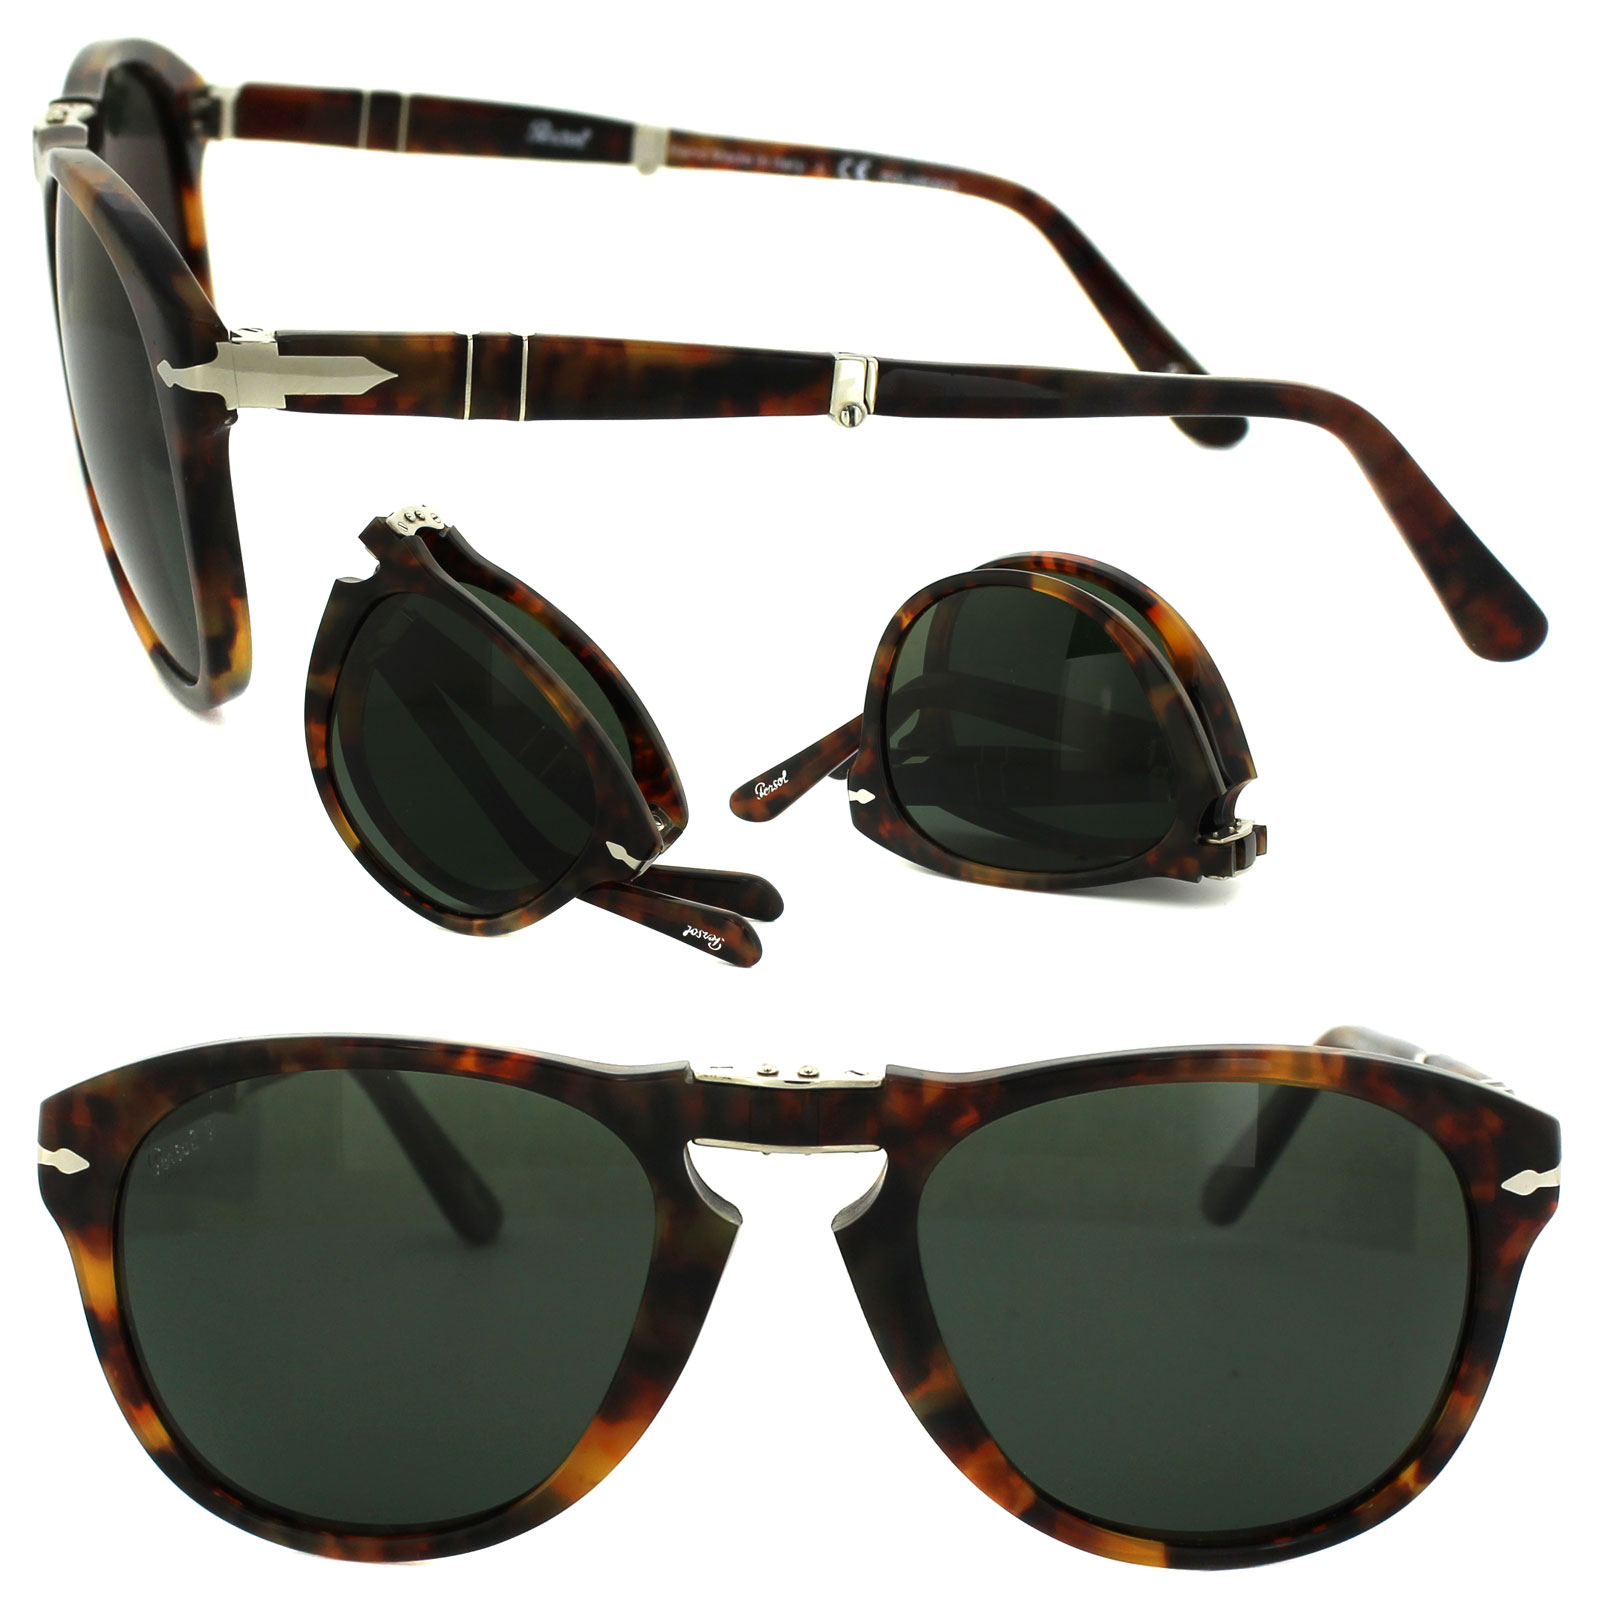 53d111feae7 Persol 2756 Polarized Sunglasses